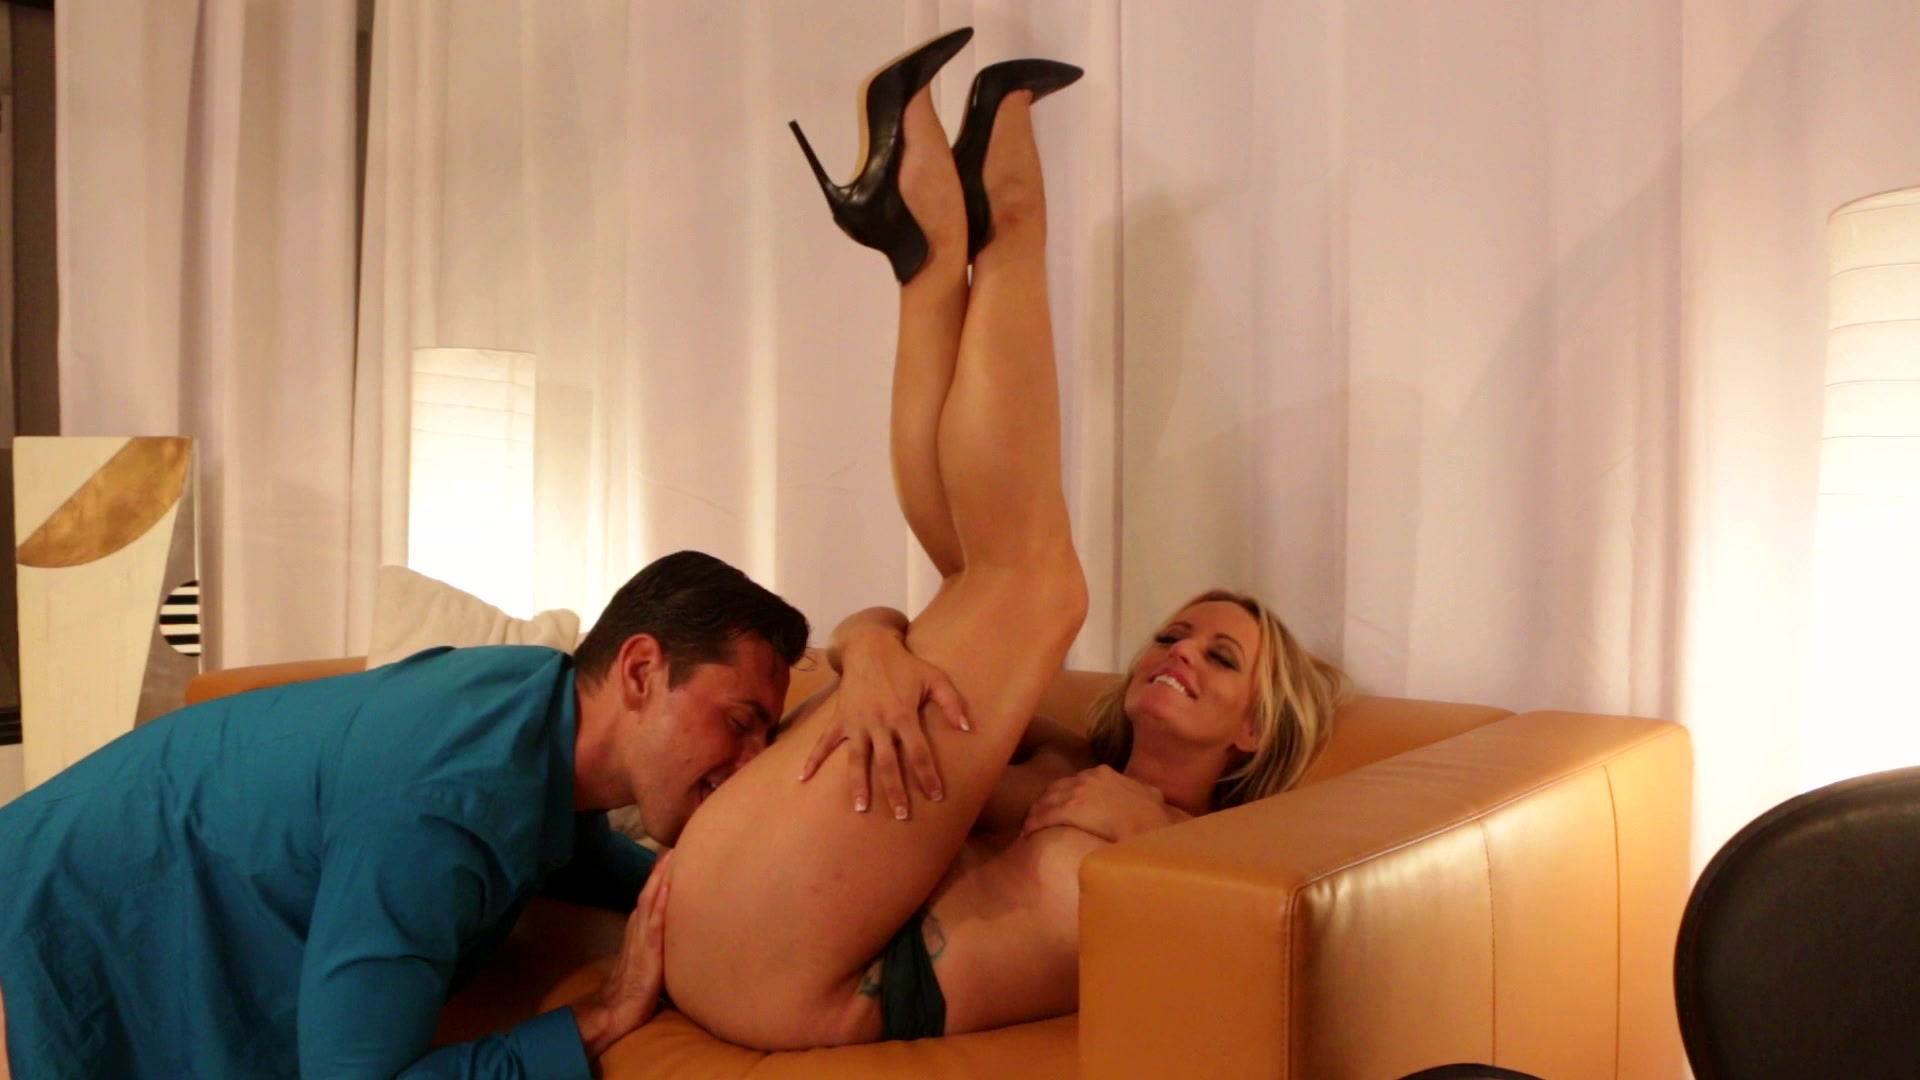 Scene with Stormy Daniels - image 20 out of 20